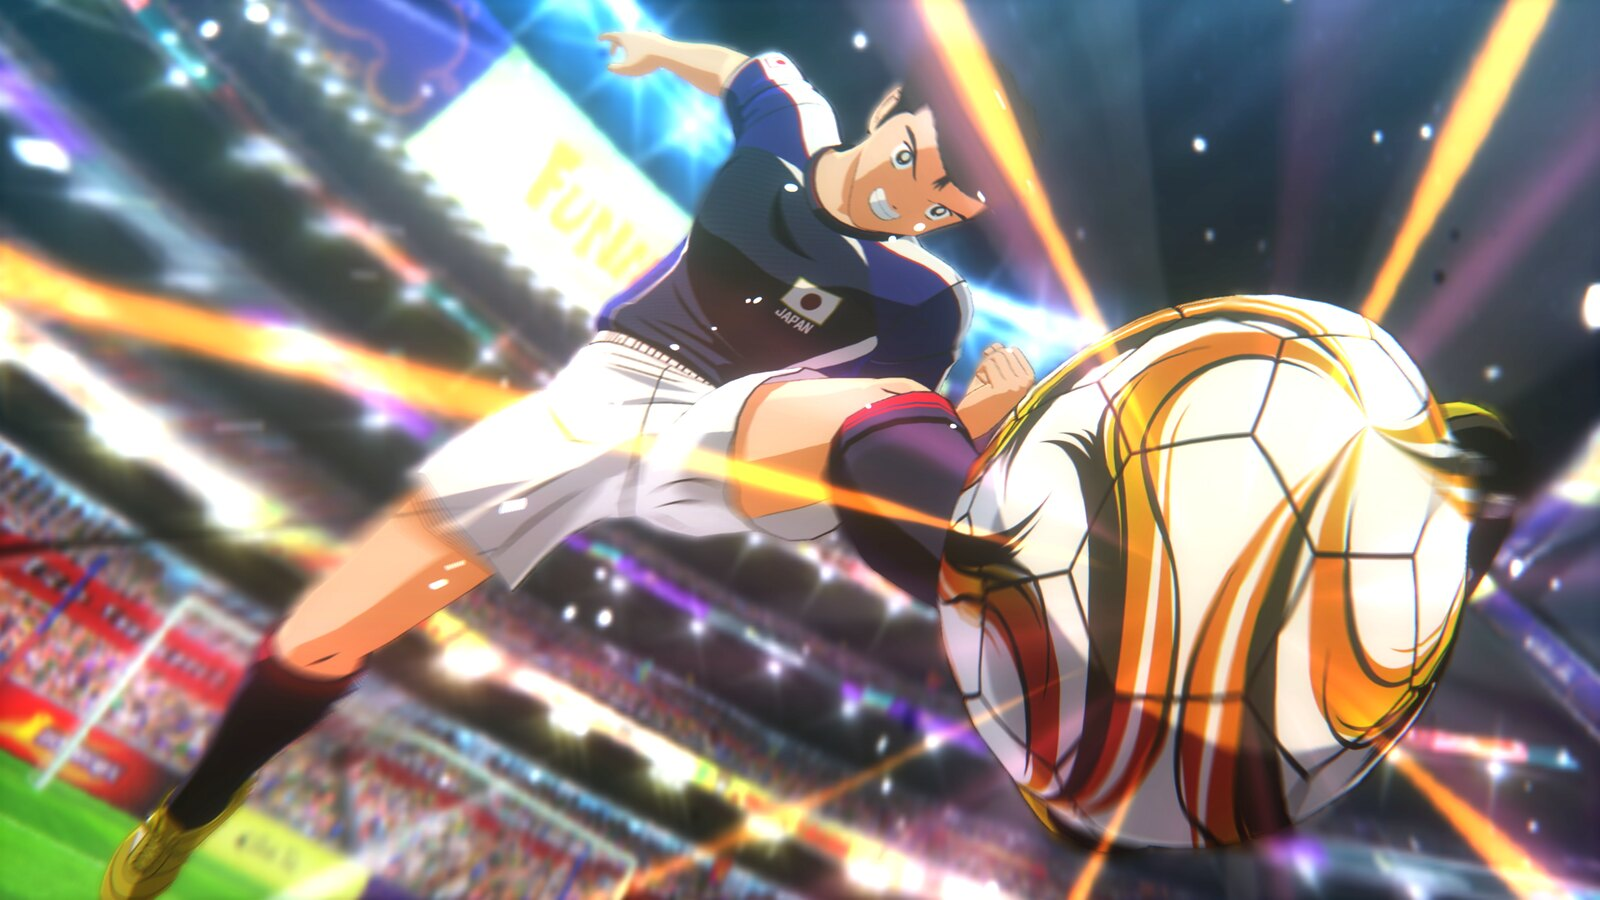 49434668856 8070aa9482 h - Captain Tsubasa: Rise of new Champions bringt Arcade-Action ins Wohnzimmer